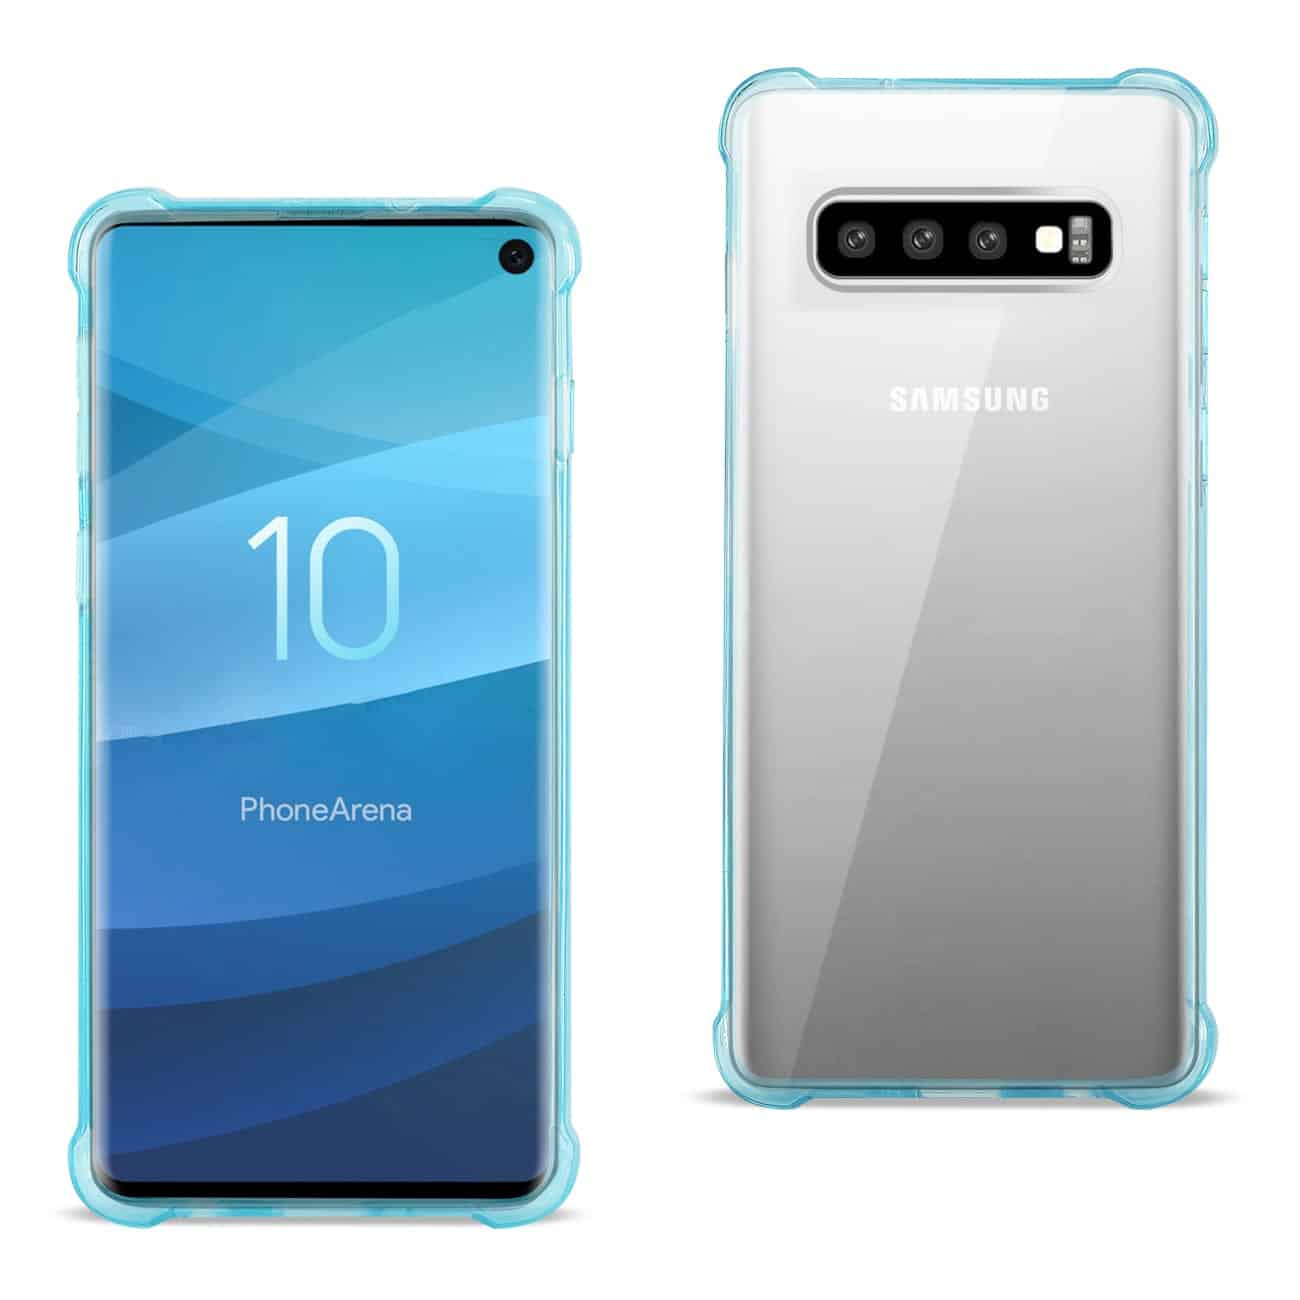 SAMSUNG GALAXY S10 Clear Bumper Case With Air Cushion Protection In Clear Navy